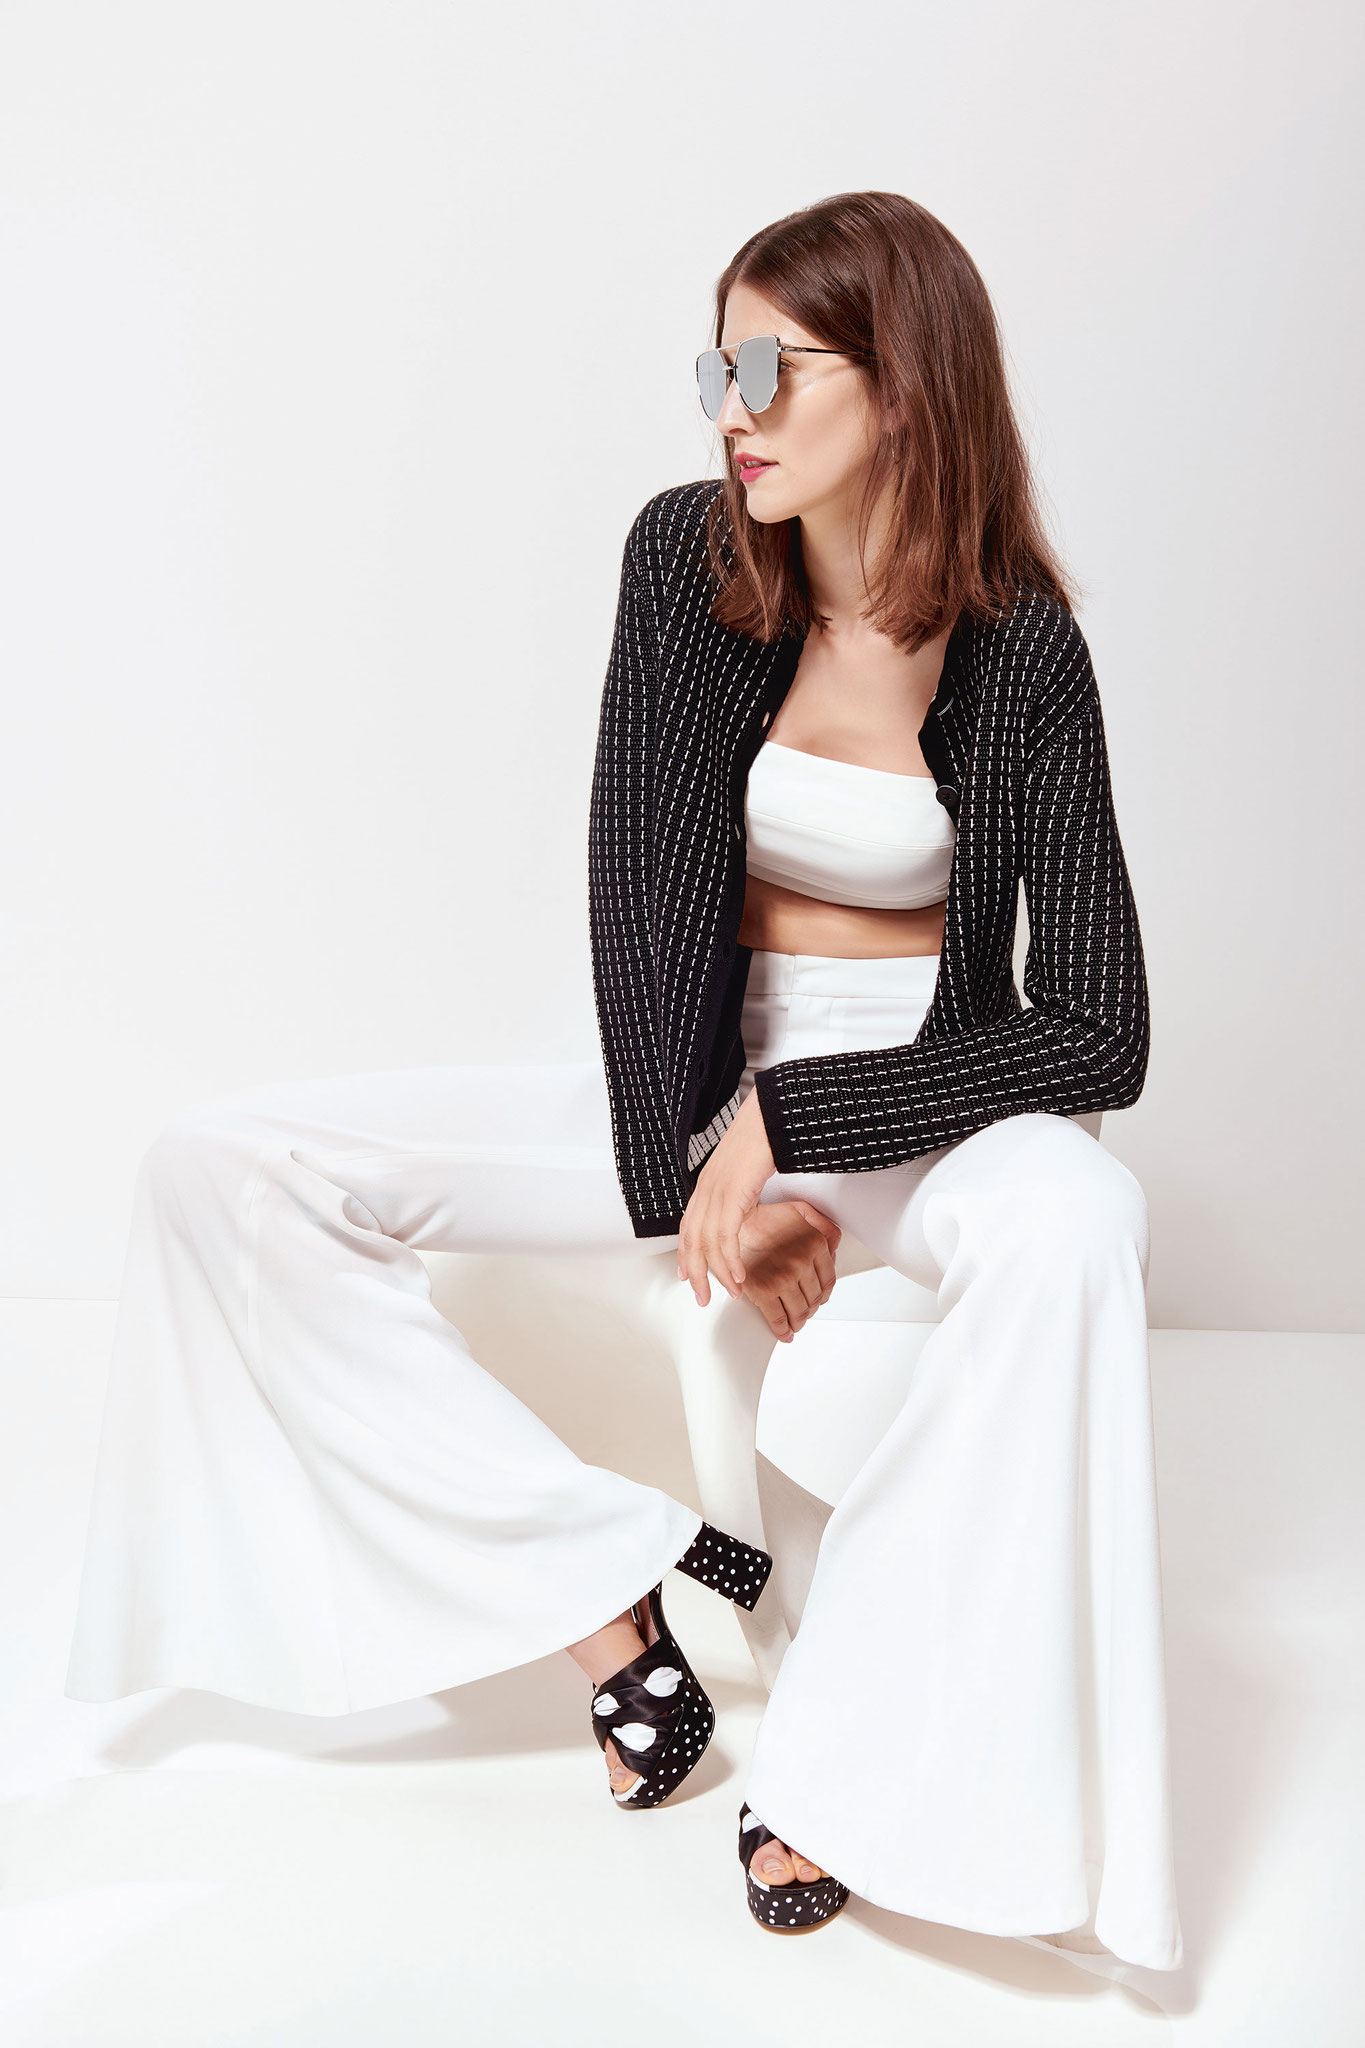 ESISTO - Cashmere - Collection F/S 2019 - Black & White